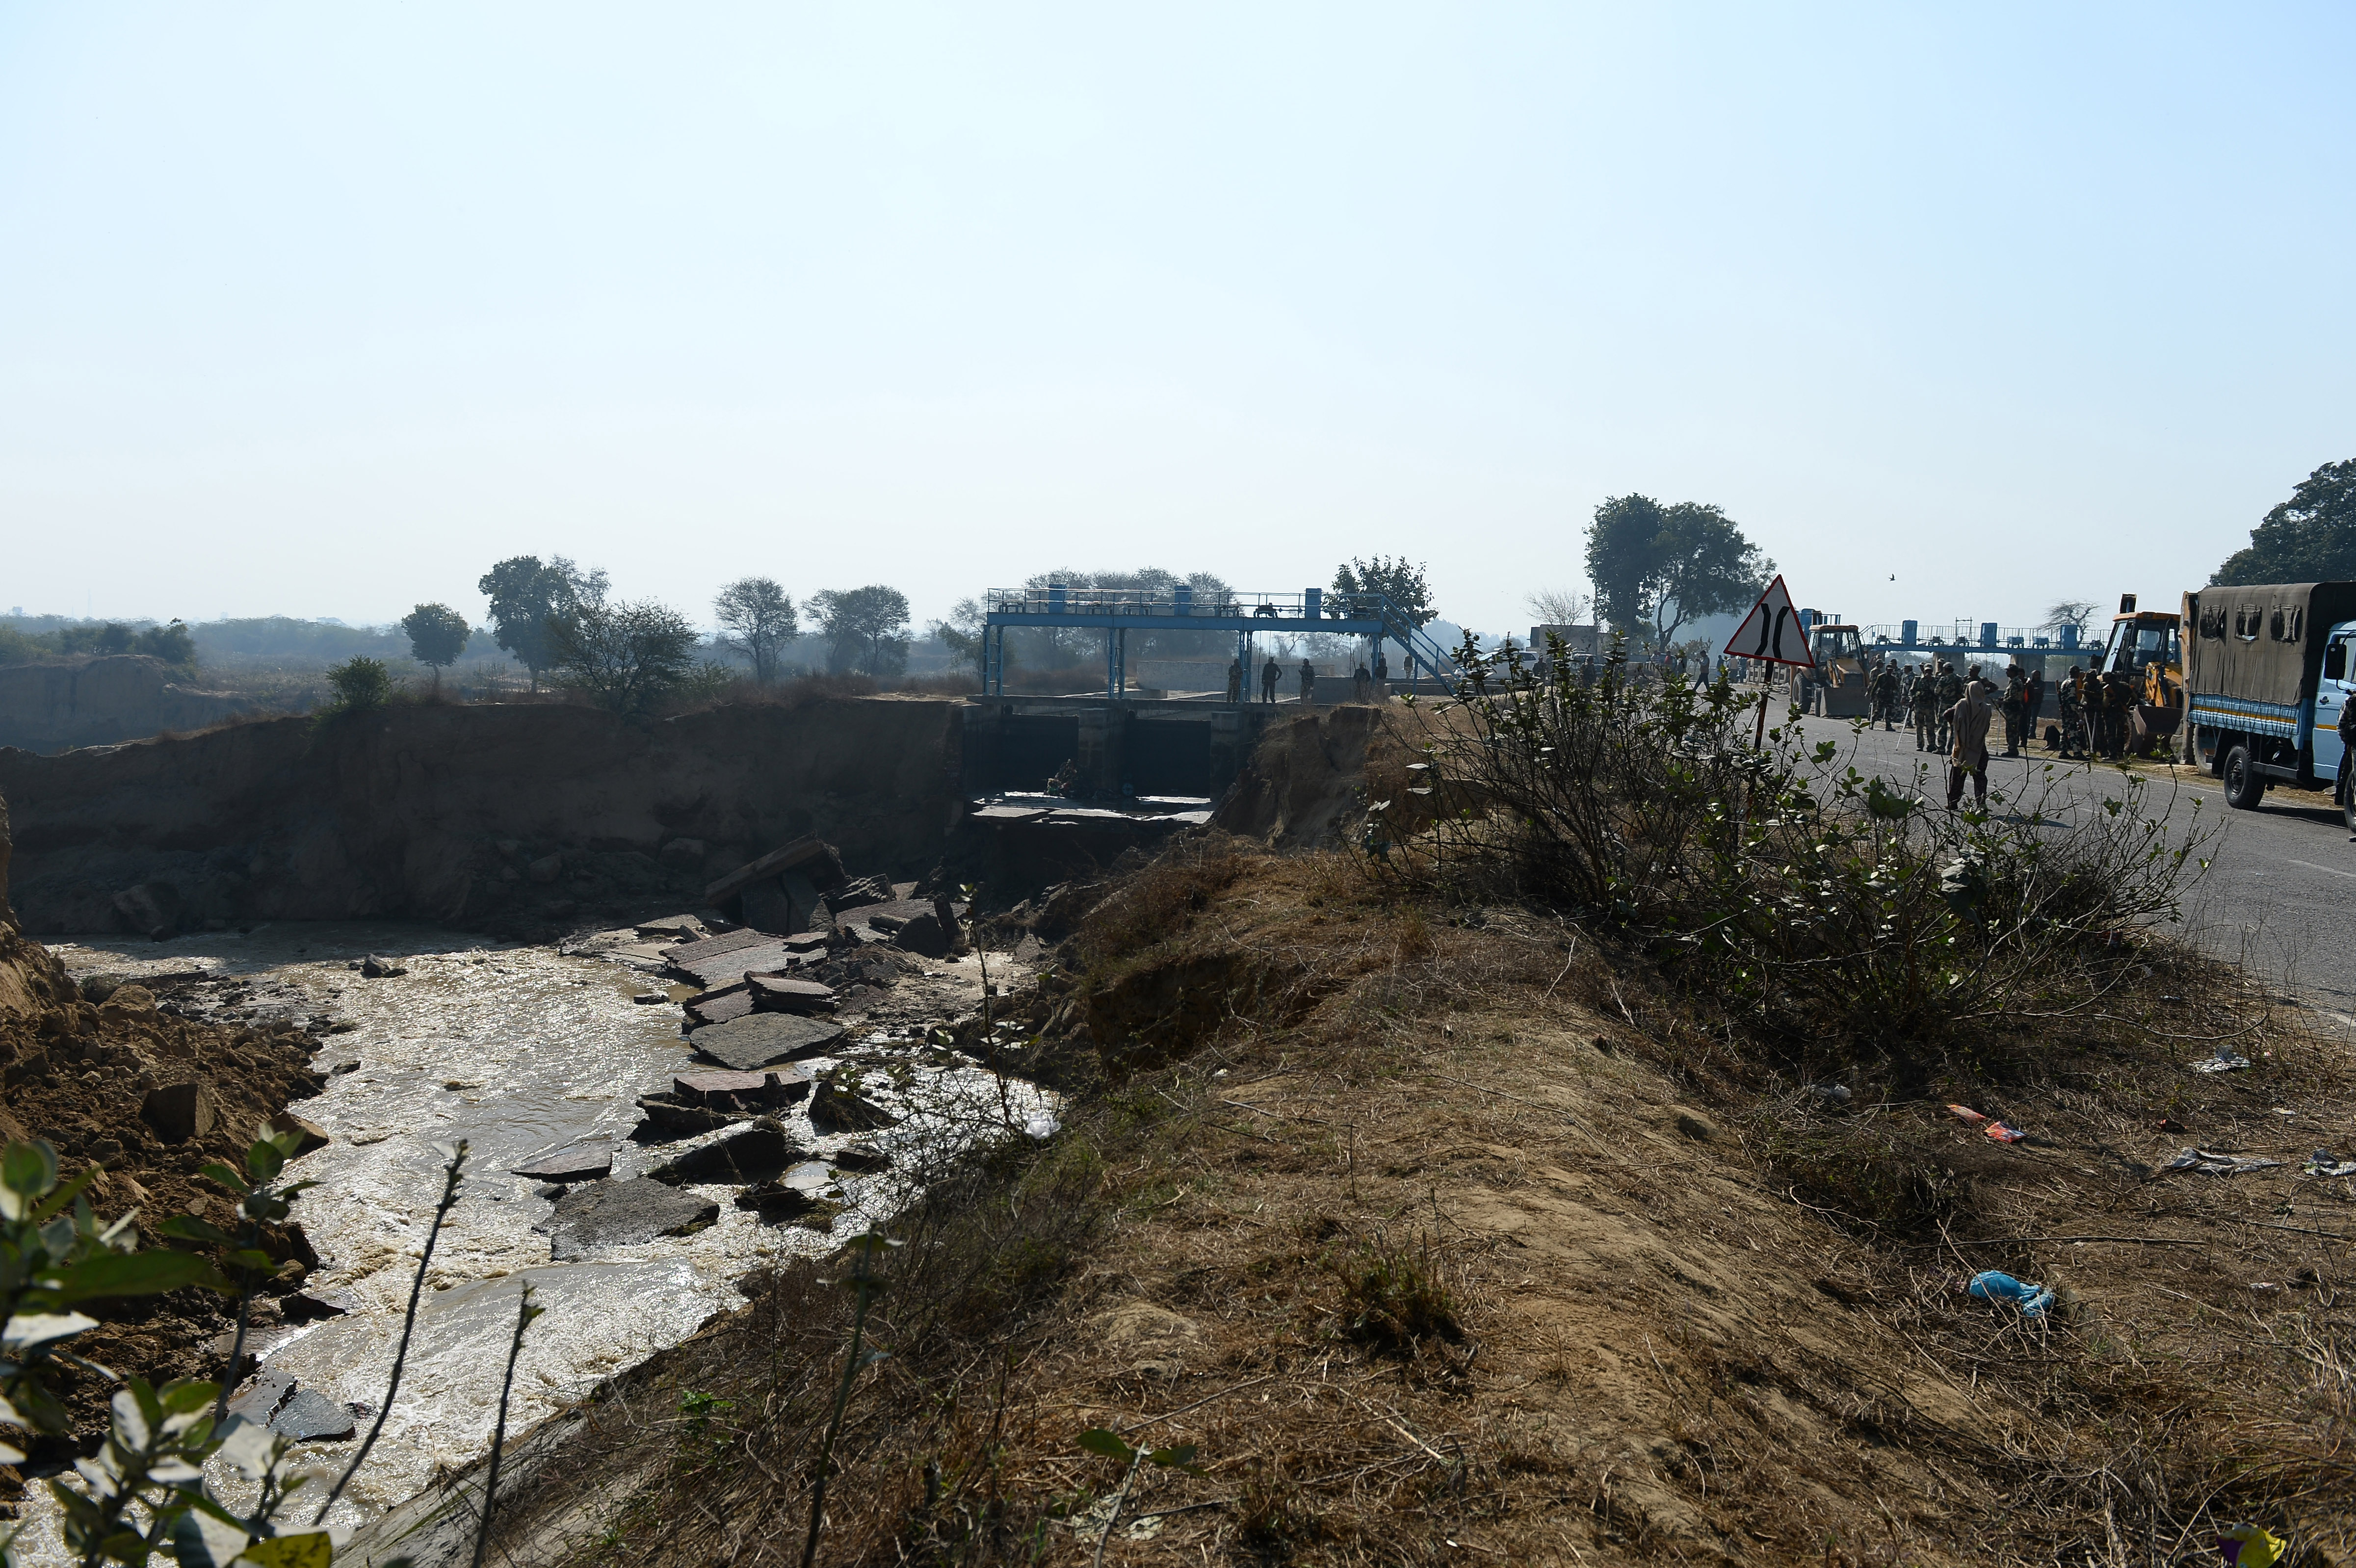 Indian soldiers stand near a damaged portion of the Munak canal, which supplies water to New Delhi, near Bindroli village in the Indian state of Haryana, on Feb. 22, 2016